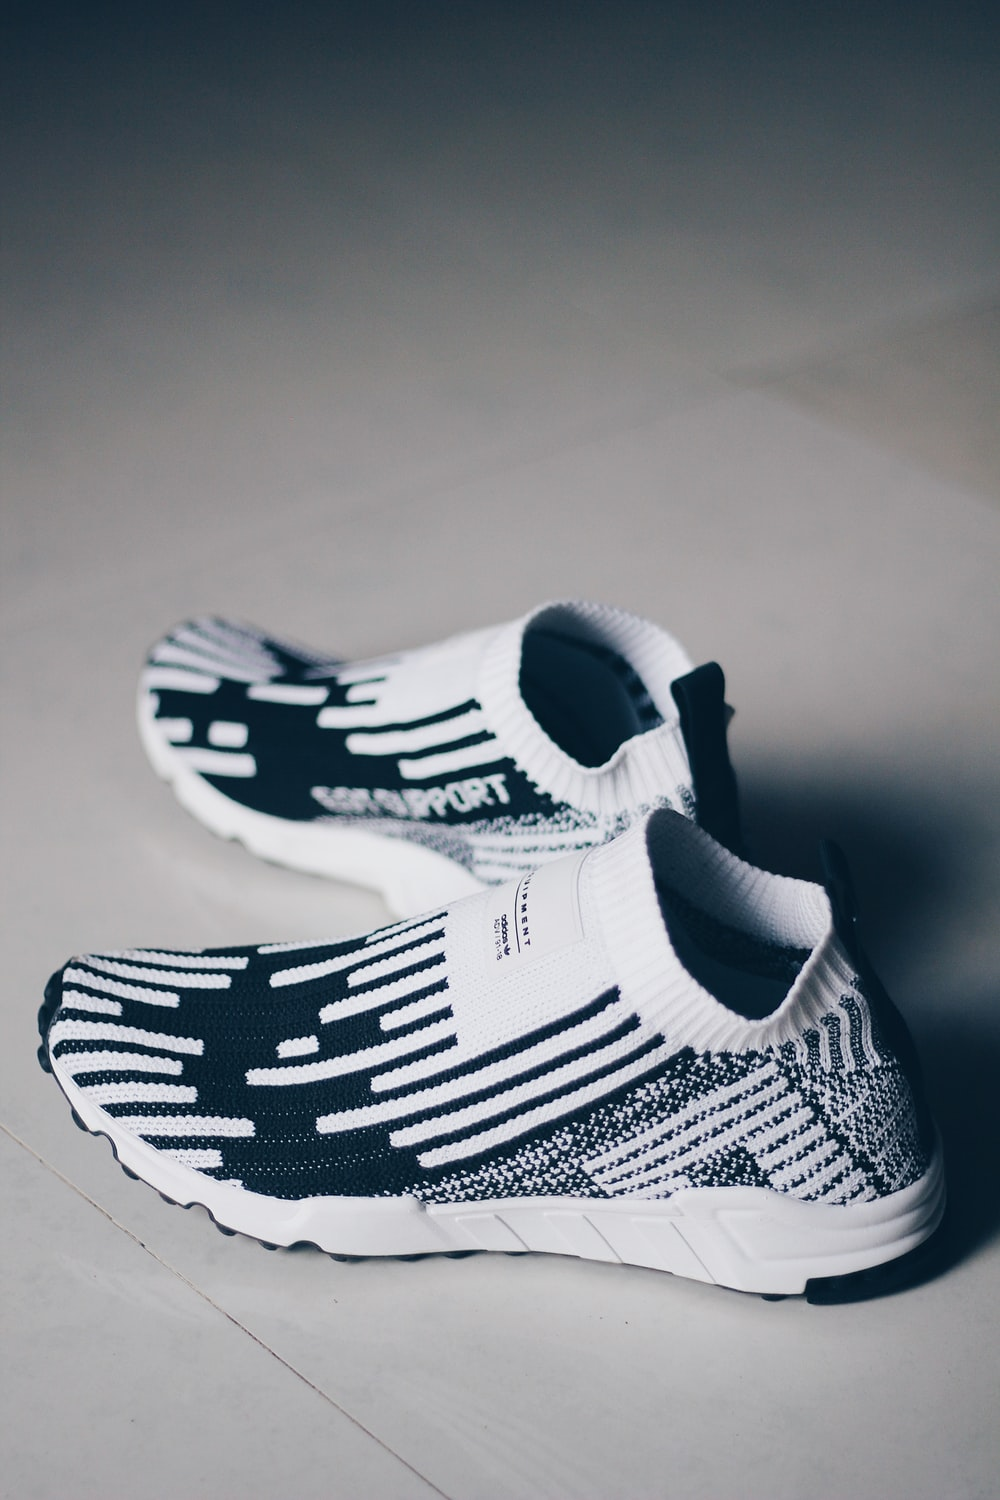 shallow focus photo of pair of white-and-black running shoes